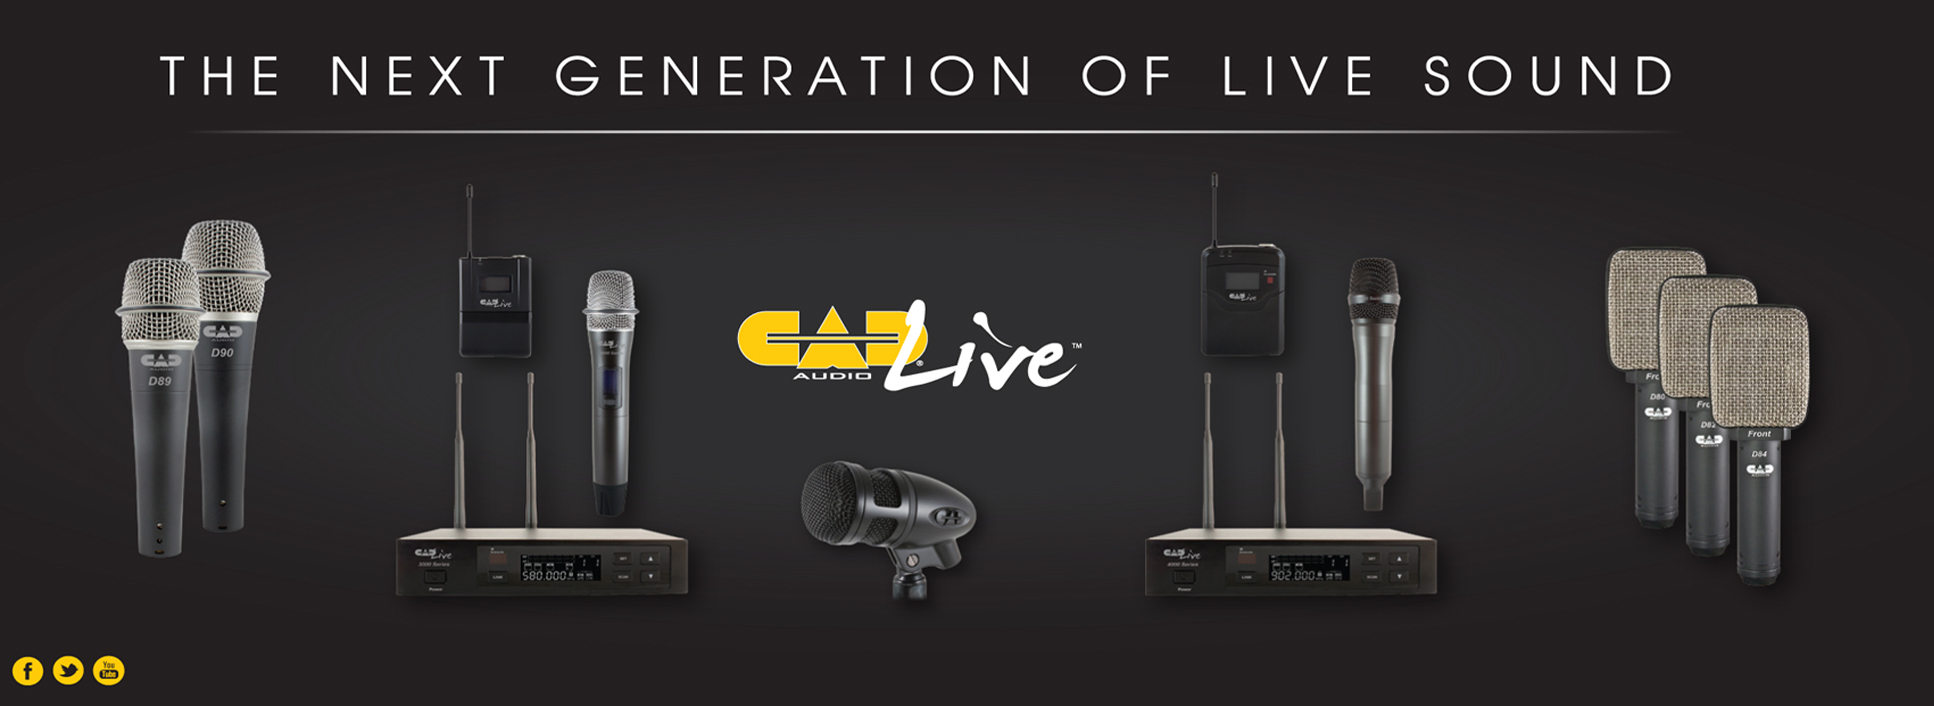 Cad Audio The Brand Used By Professionals Dynamic Mic Amplifier To Use Speaker As Microphone Electronic Cadlive